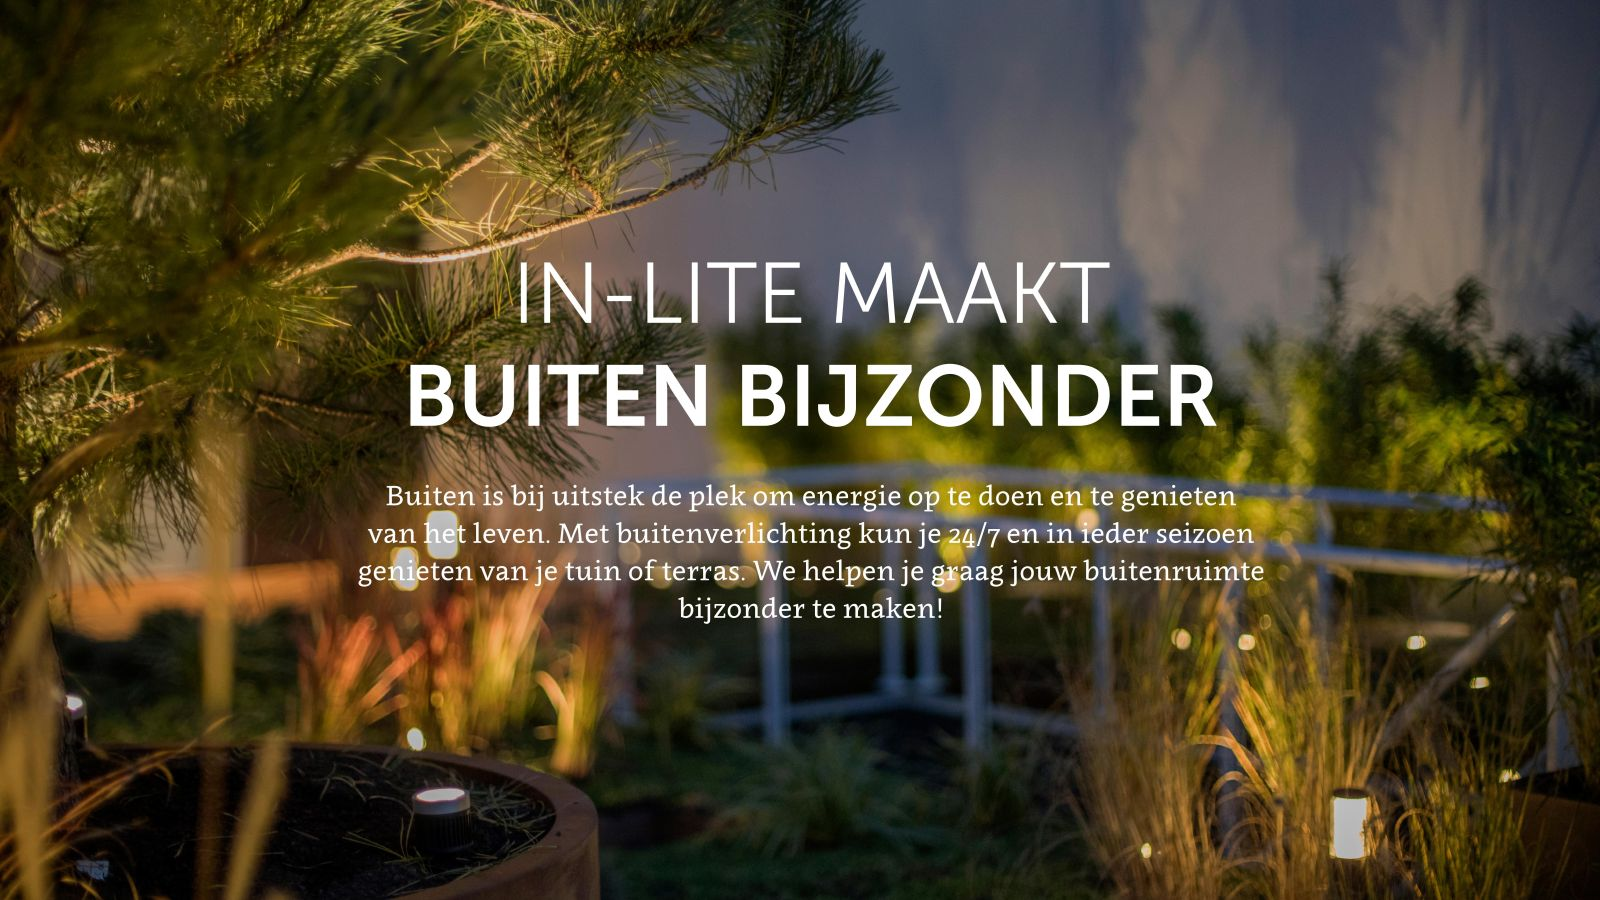 Tuincentrum werkhoven In-lite